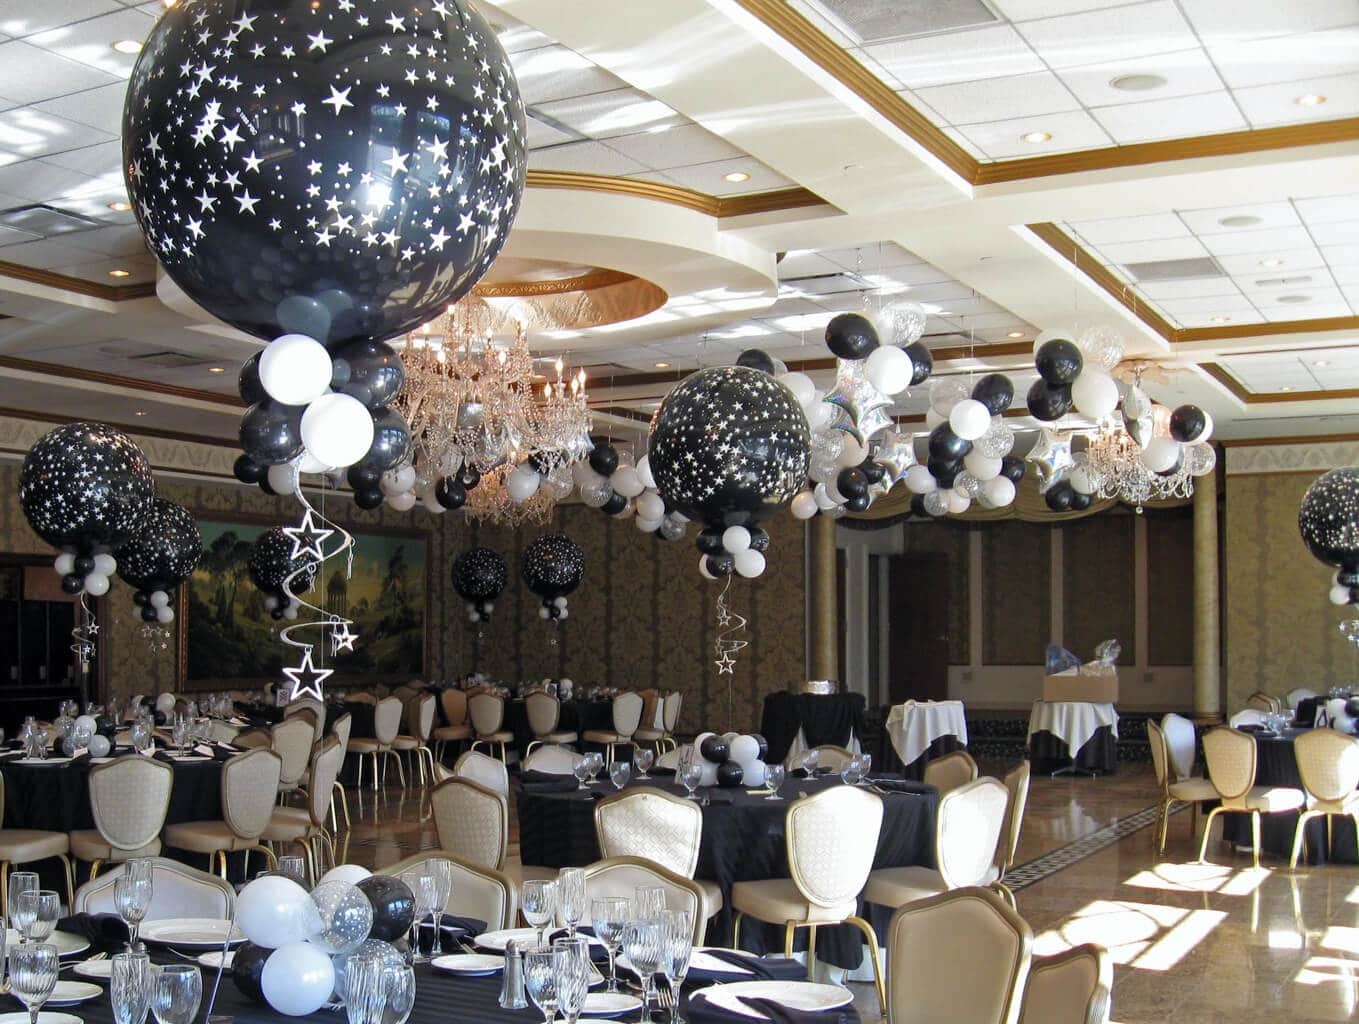 Black And White Centerpiece : Balloon centerpieces artistry